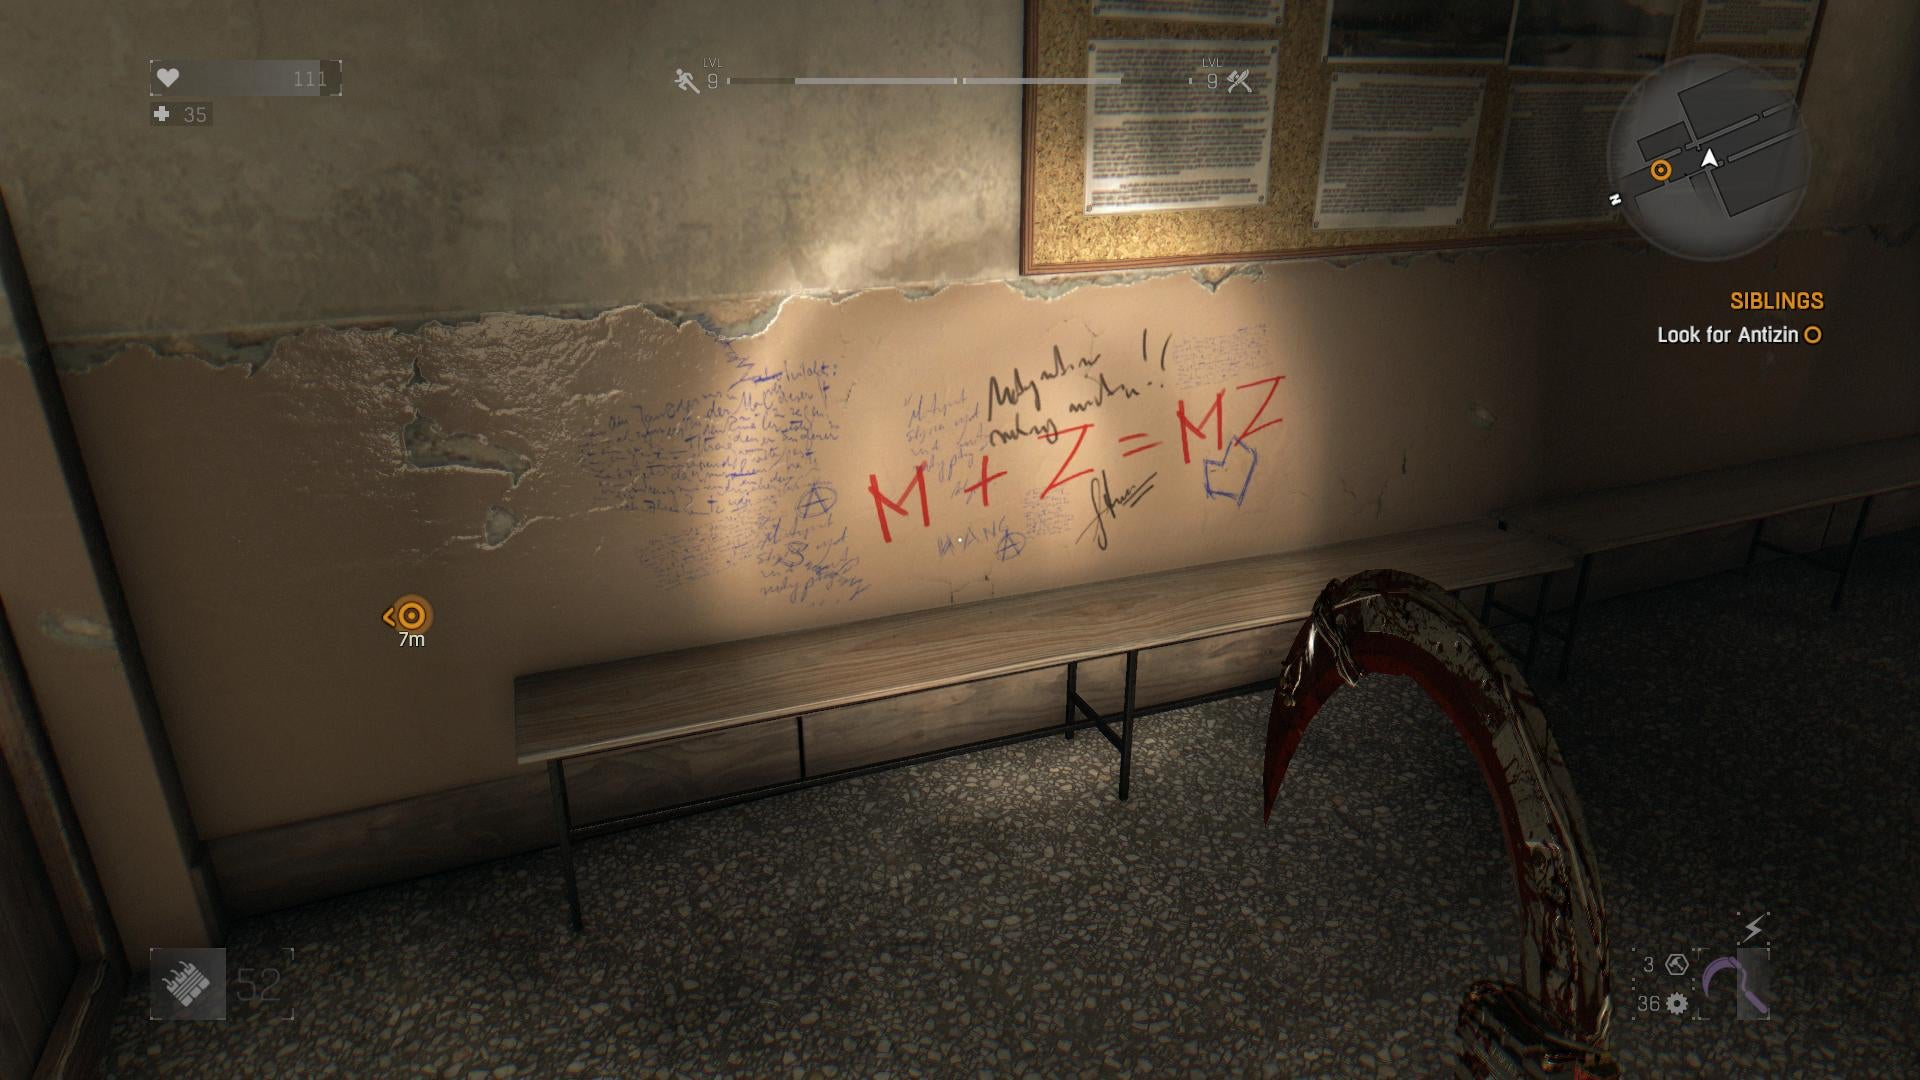 Good Job With The Graffiti, Dying Light